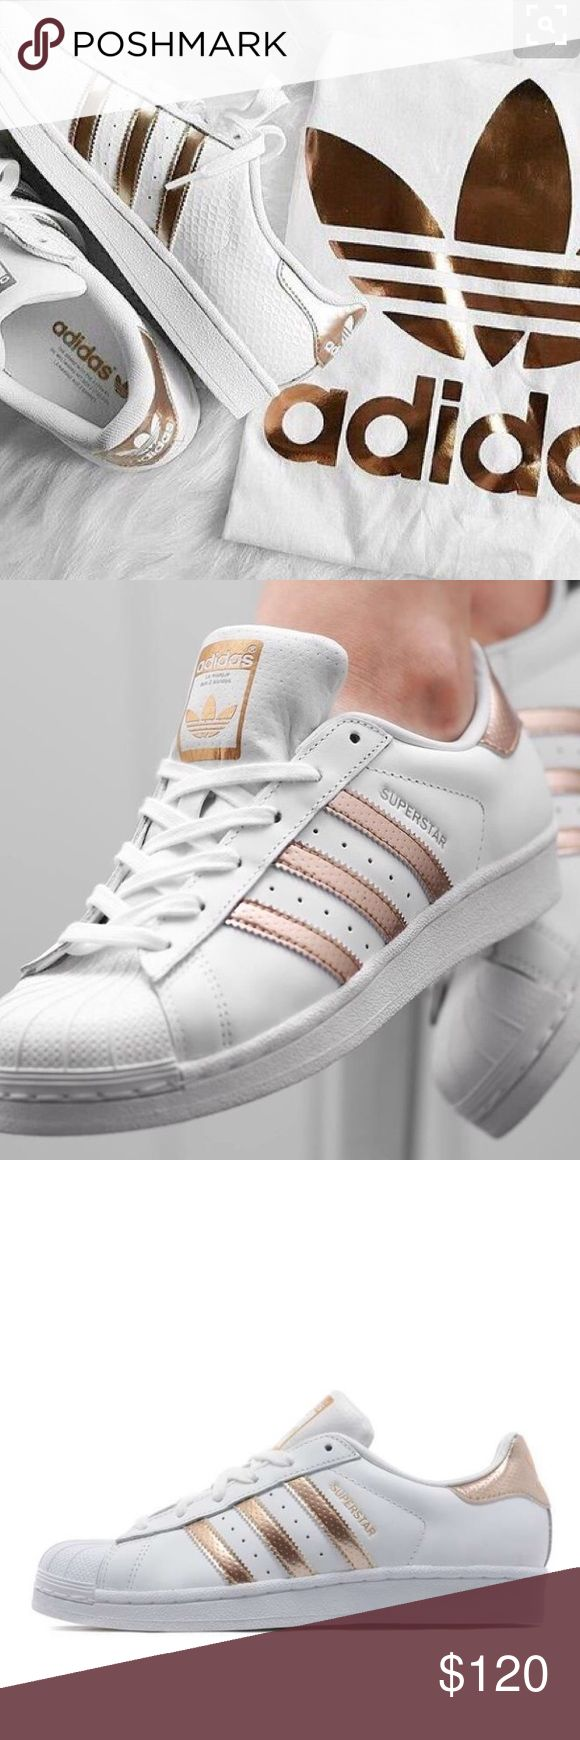 SOLD Adidas Rose Gold Superstars These rare beauties are brand new! Never worn Difficult to find online and sold out in store. Add a touch of feminine chic to any outfit. Great gift for yourself or someone else.